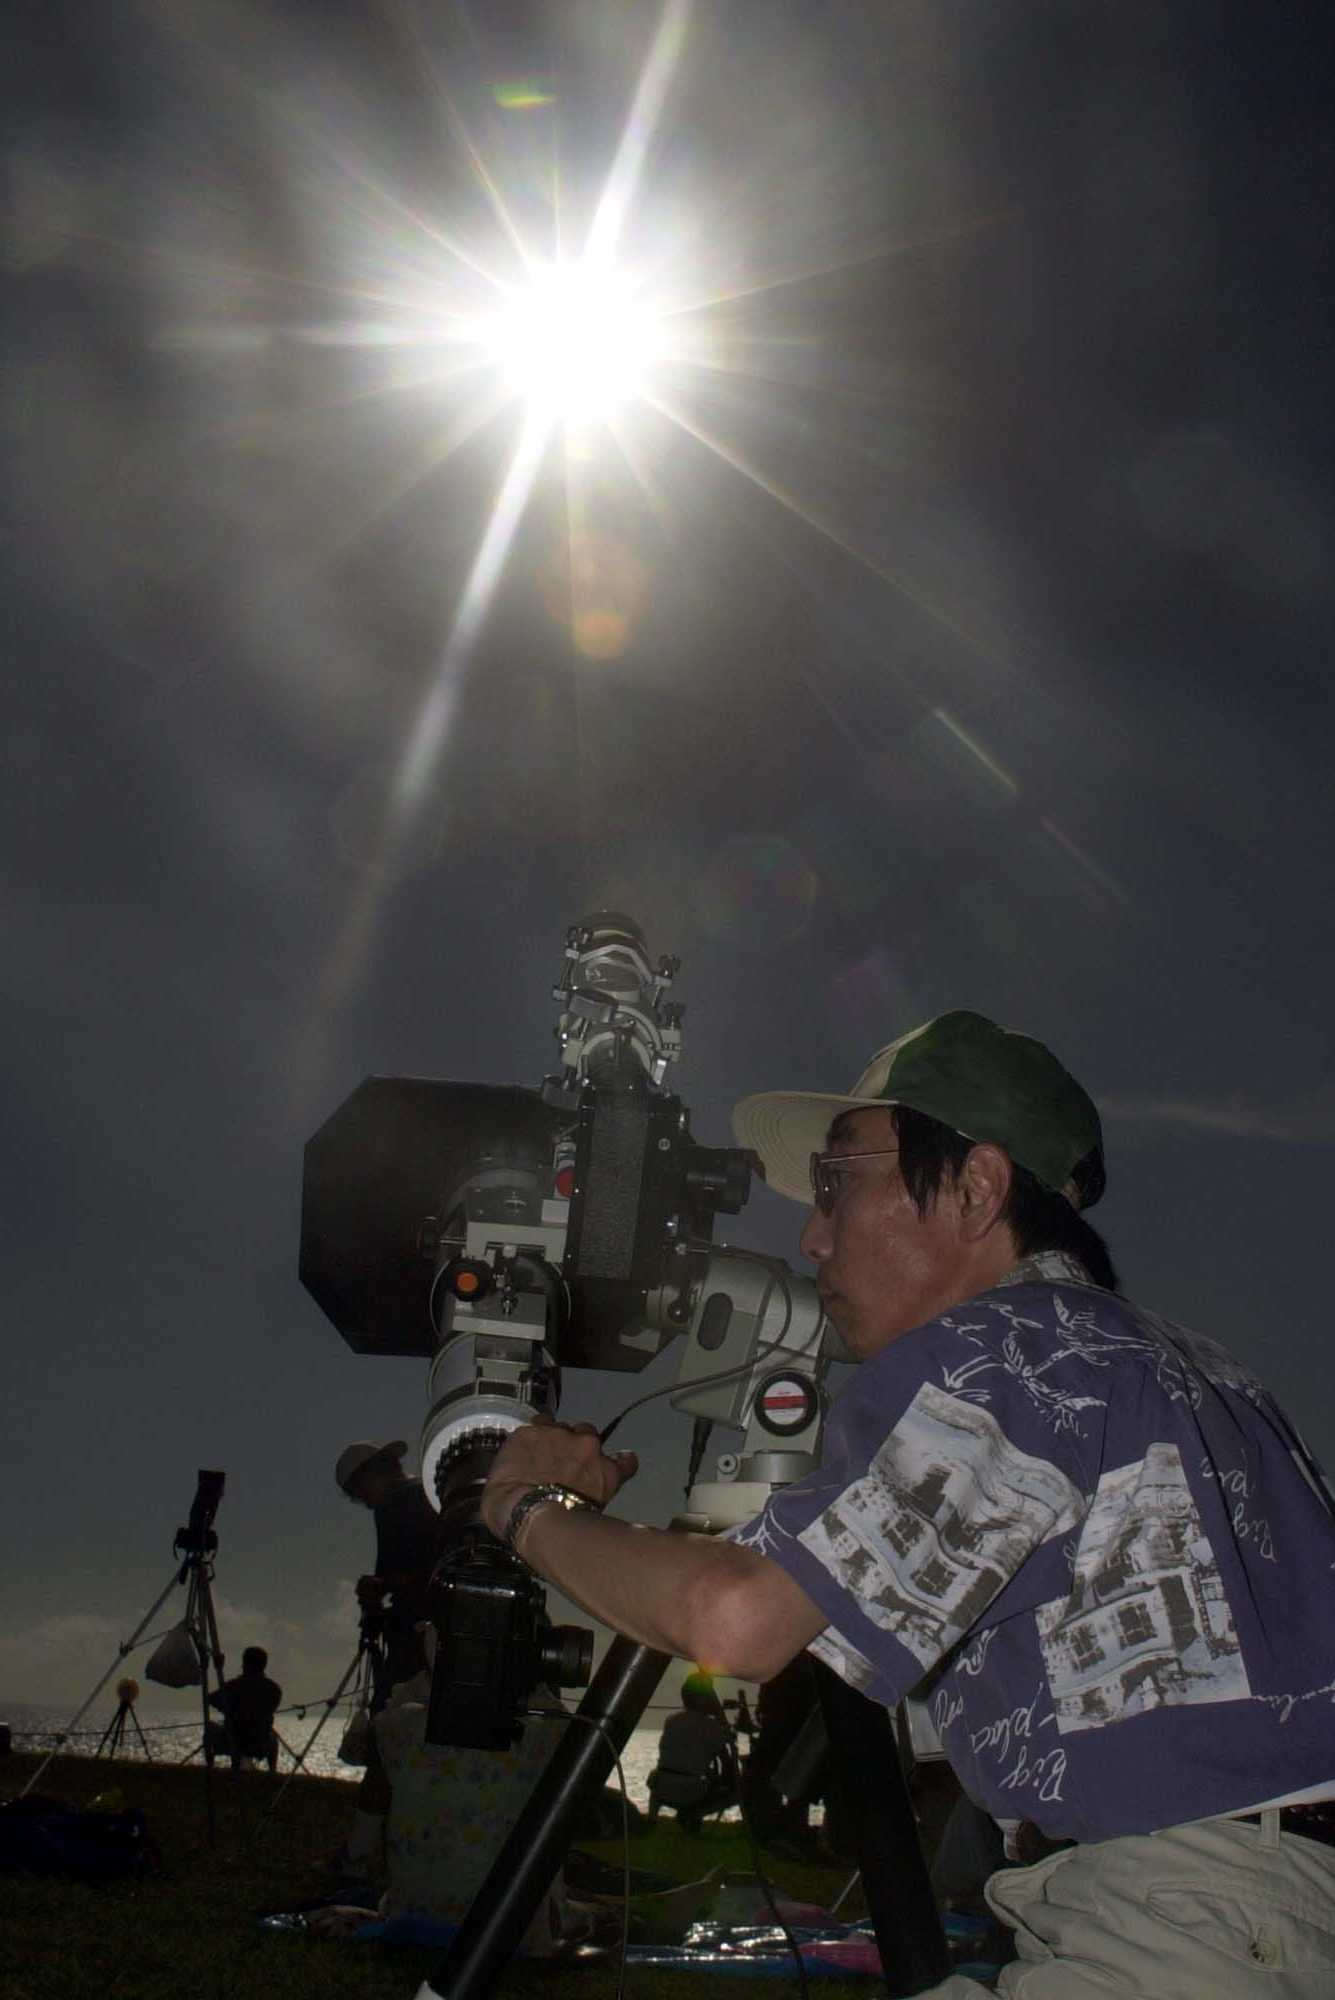 Hideo Fukushima, a staff of Japan' s National Astronomical Observatory, gazes through his camera to observe the sun during an annular eclipse at the Suicide Cliff in Tinian in the Northern Marianas Islands on the morning of June 11, 2002.